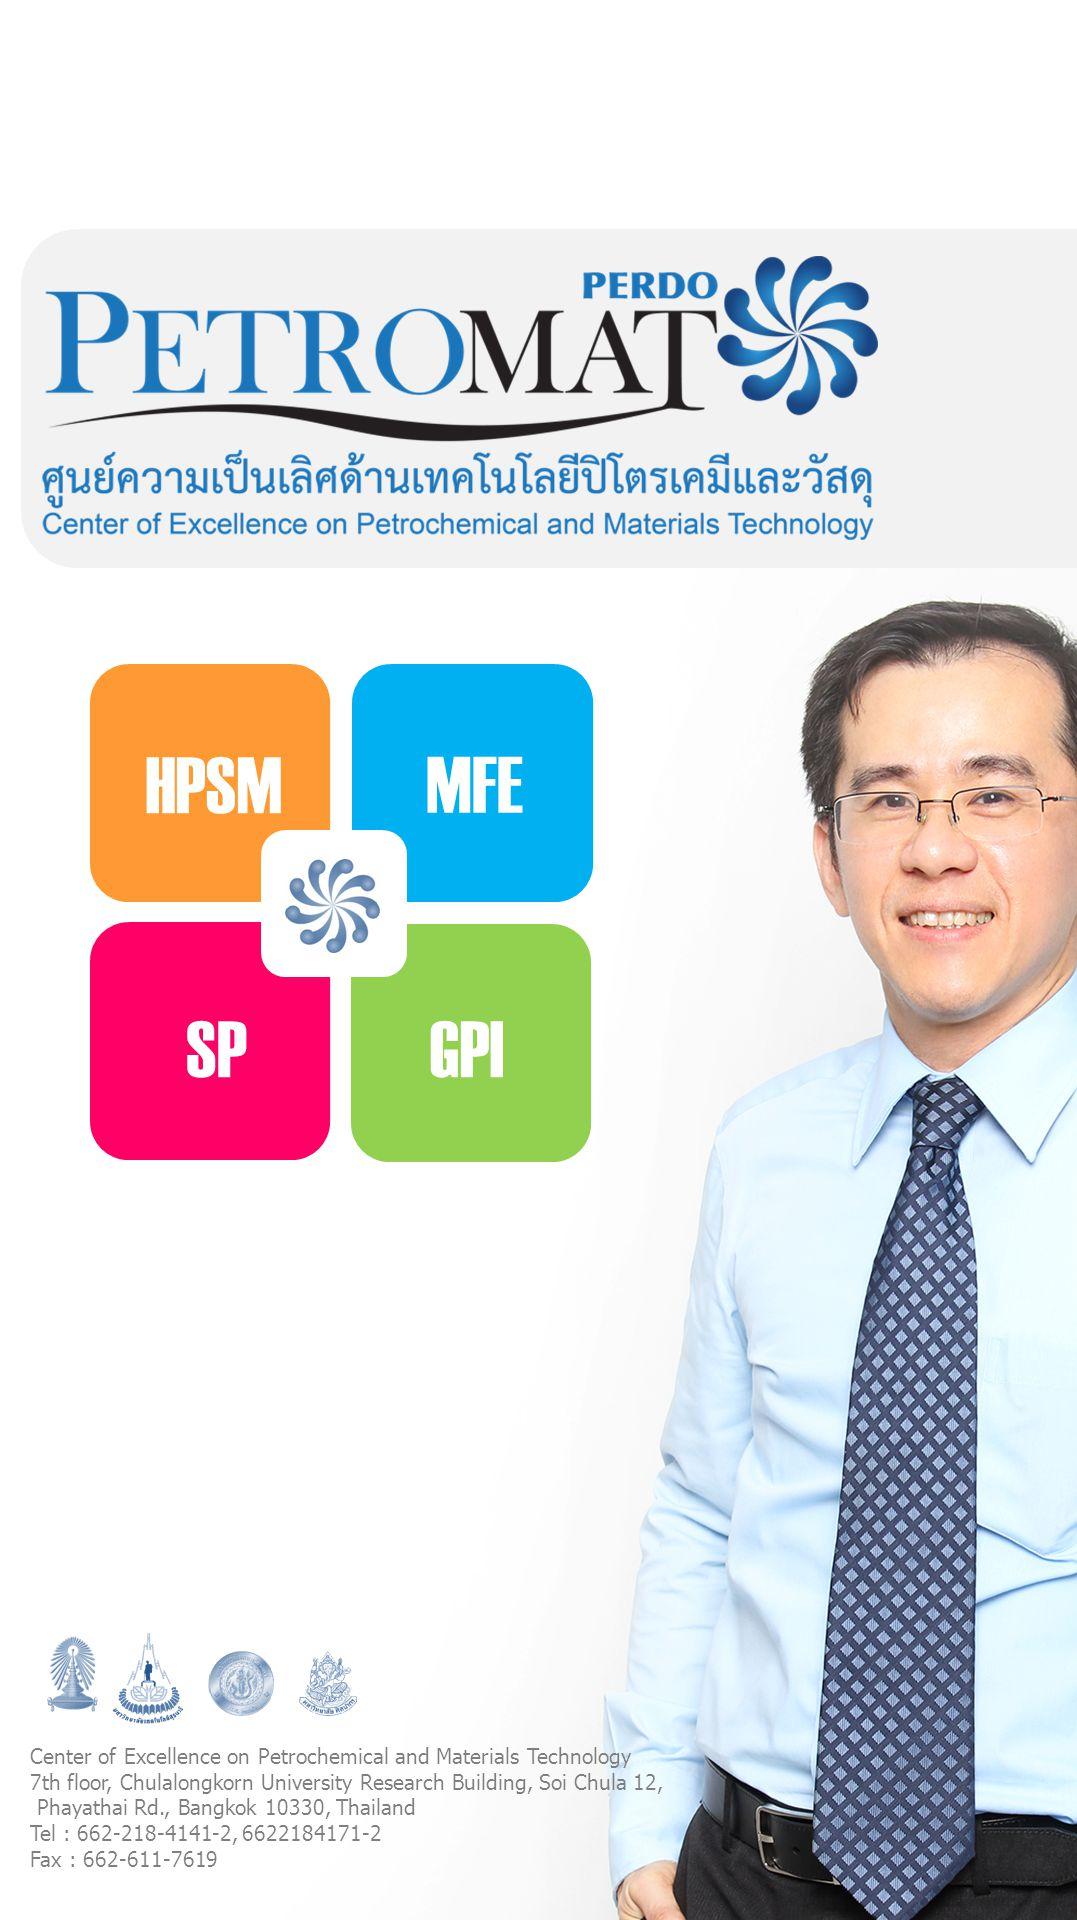 HPSM MFE. SP. GPI. Center of Excellence on Petrochemical and Materials Technology.